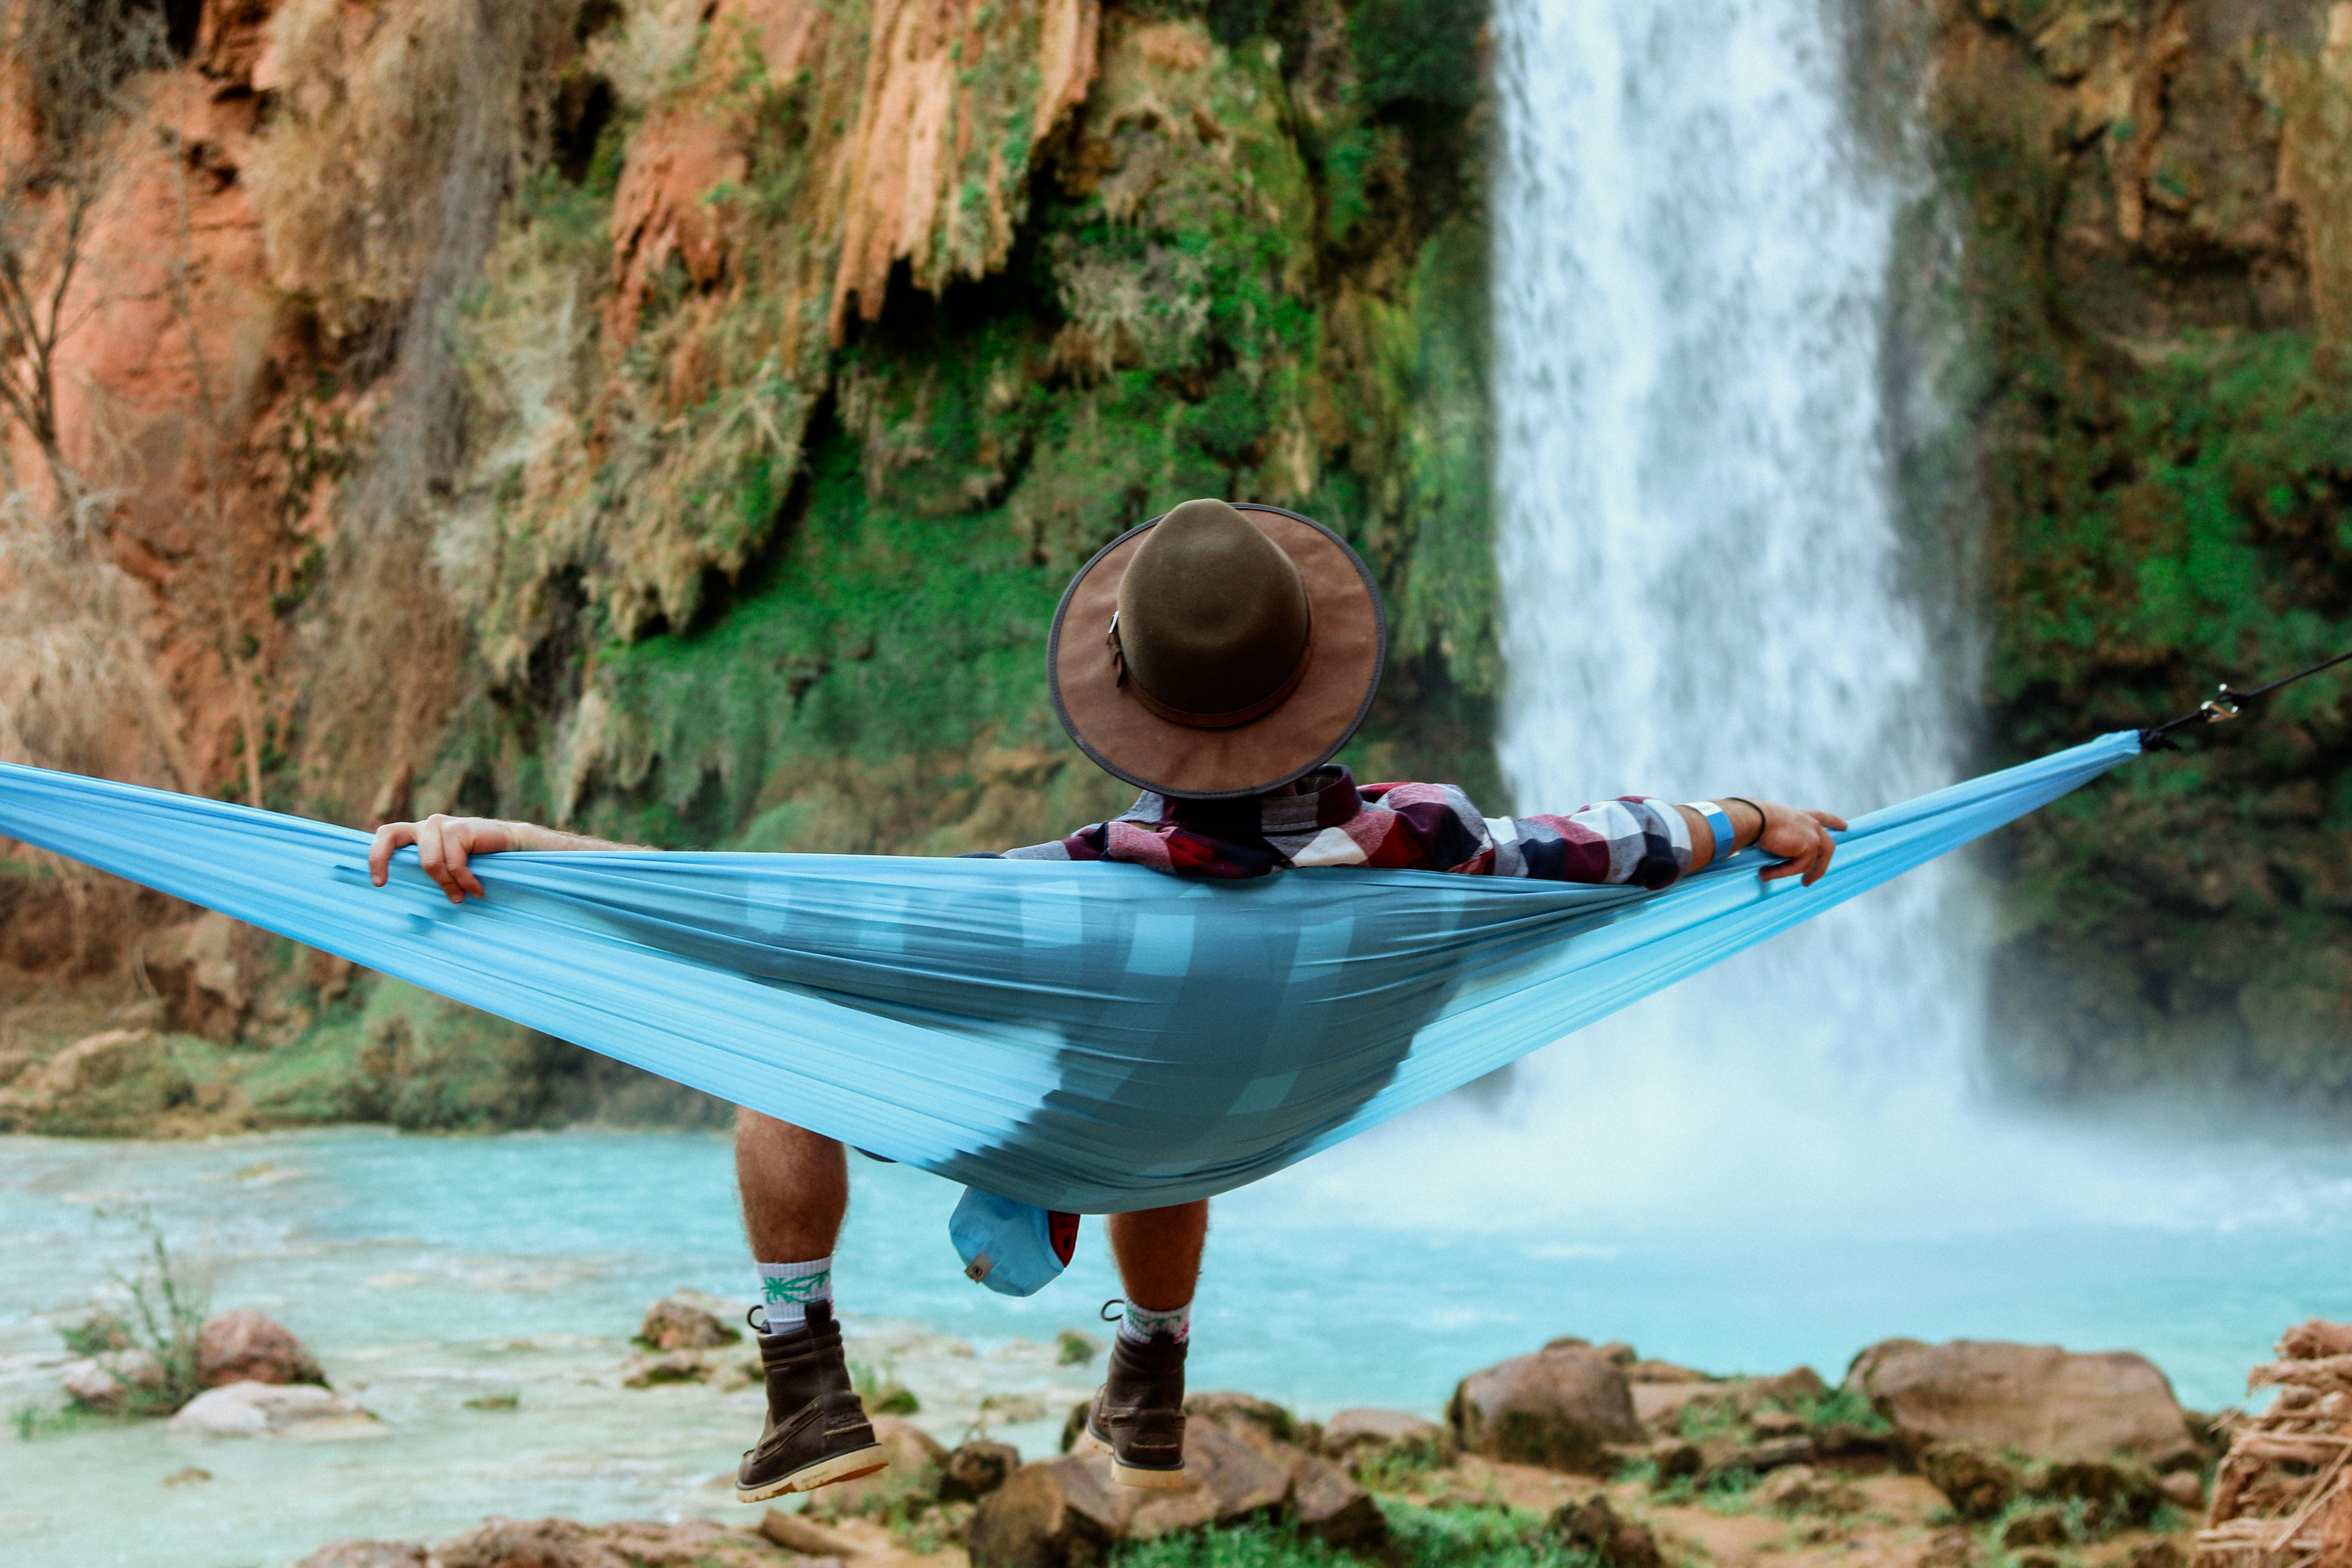 A man wearing a brown hat, plaid shirt, and hiking boots, sitting on a blue hammock in Supai Falls